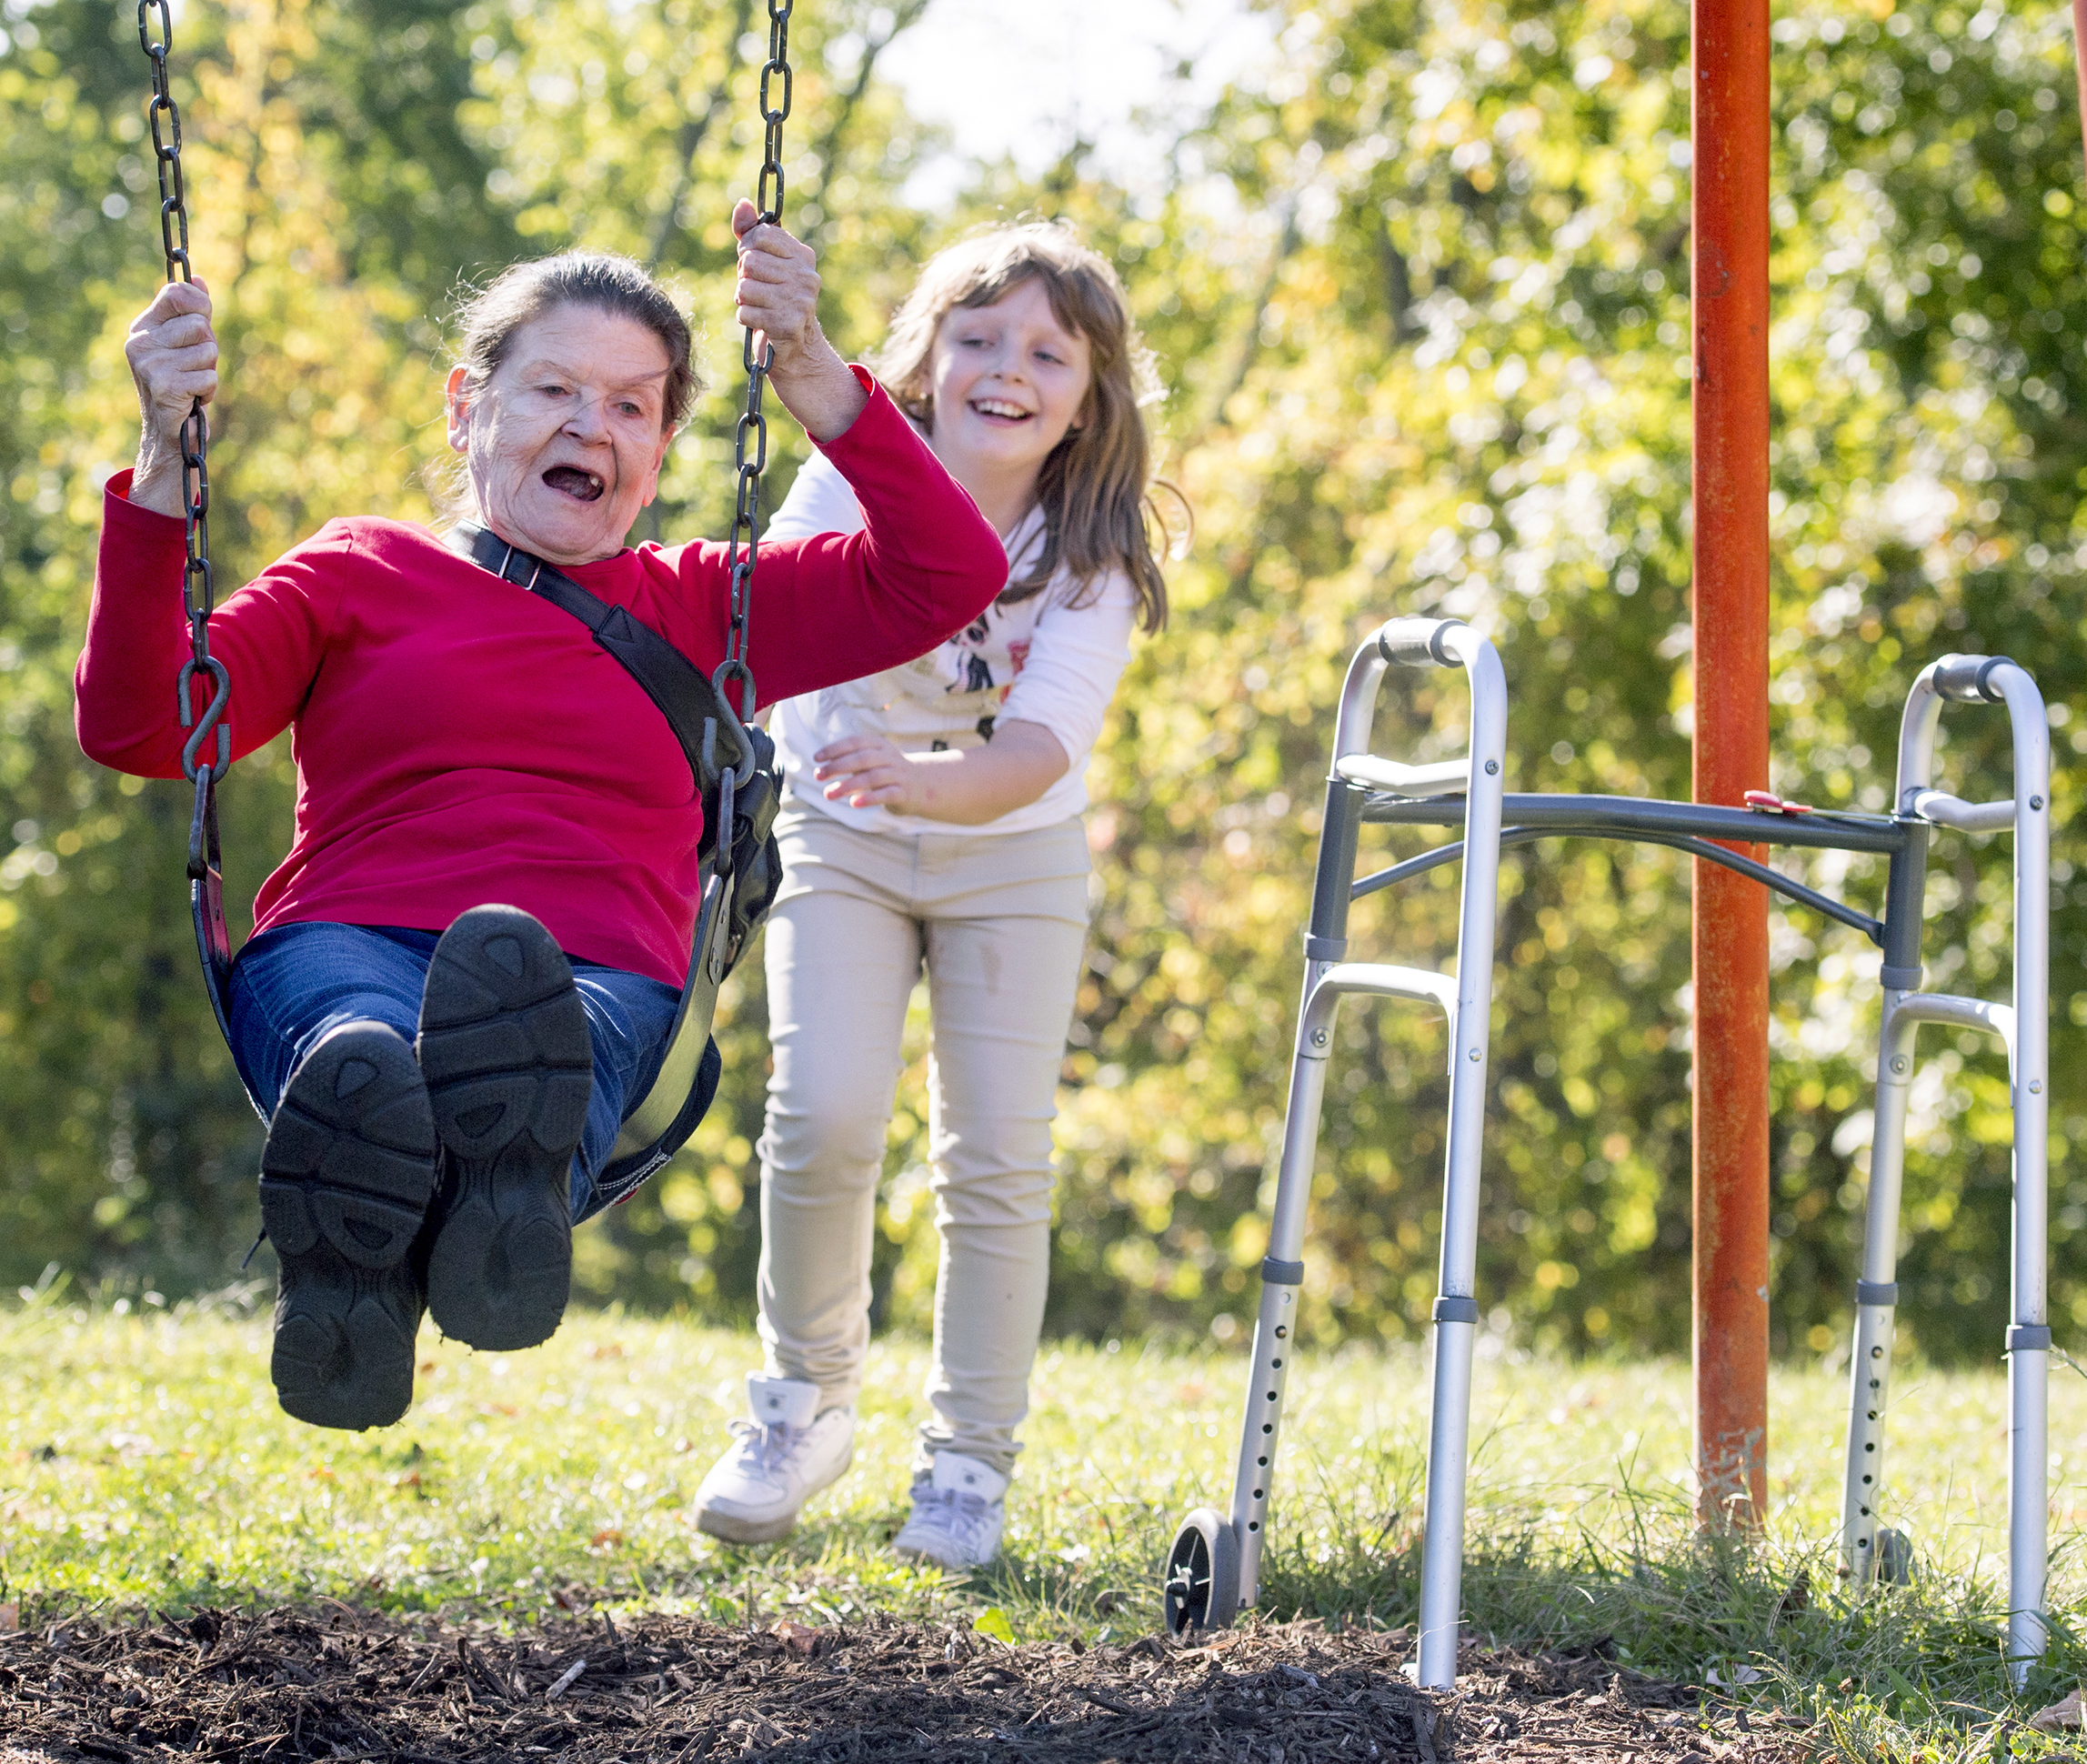 Ernestine Guido, 72 of Coraopolis, laughs as her granddaughter Hailey Guido, 9 of Ambridge, pushes her on a swing on Sunday, Oct. 1, 2017 at Settlers Cabin Park in Robinson. (Steph Chambers/Post-Gazette)